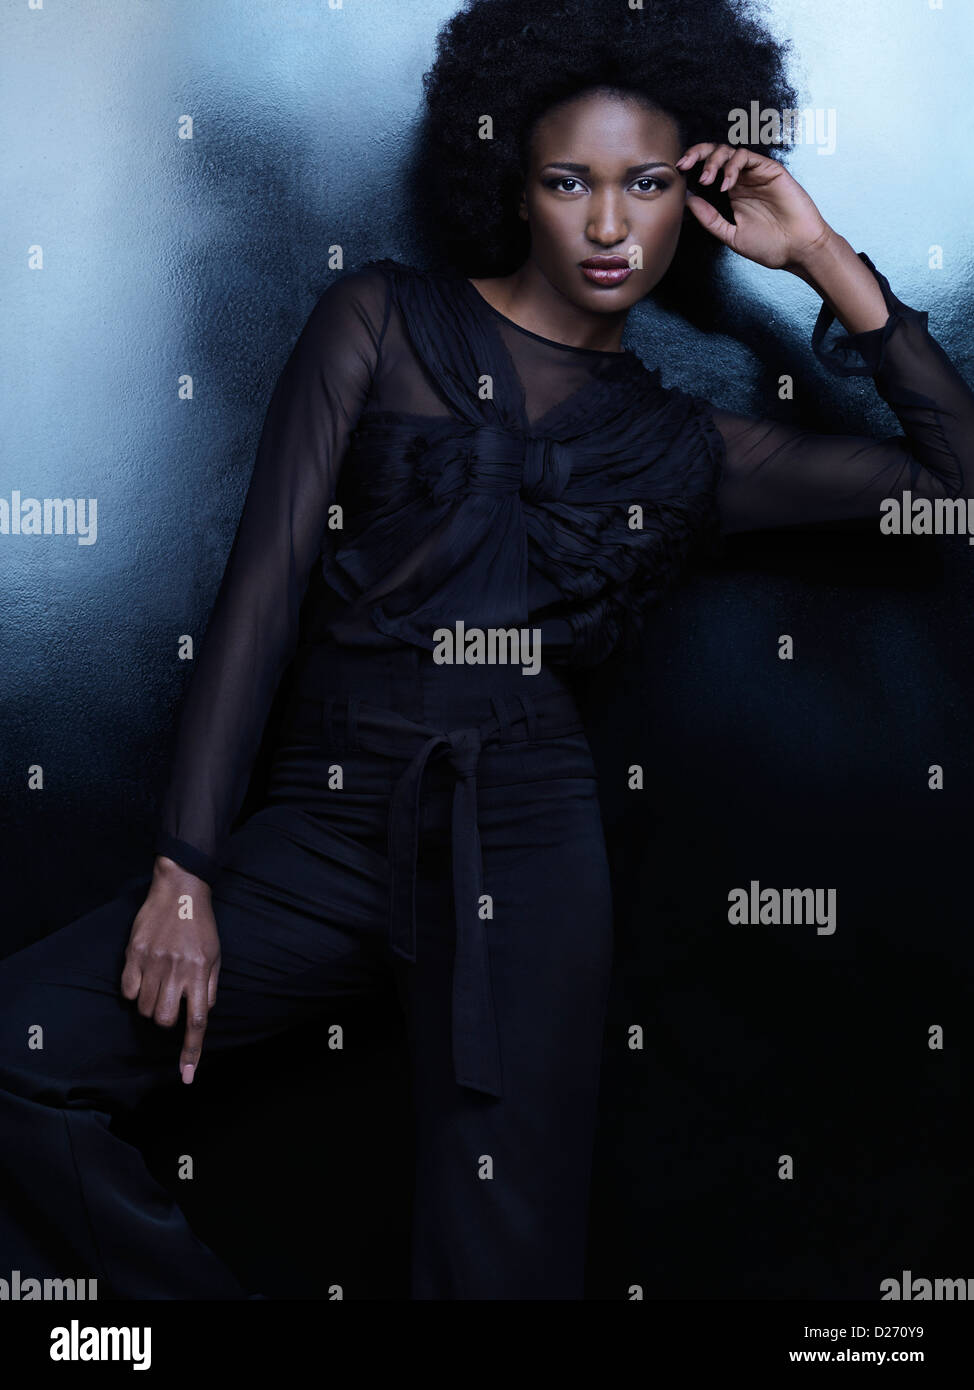 f87ebd2d0d0 Beautiful african american woman wearing fashionable black clothes posing  on shiny black background. High fashion photo.